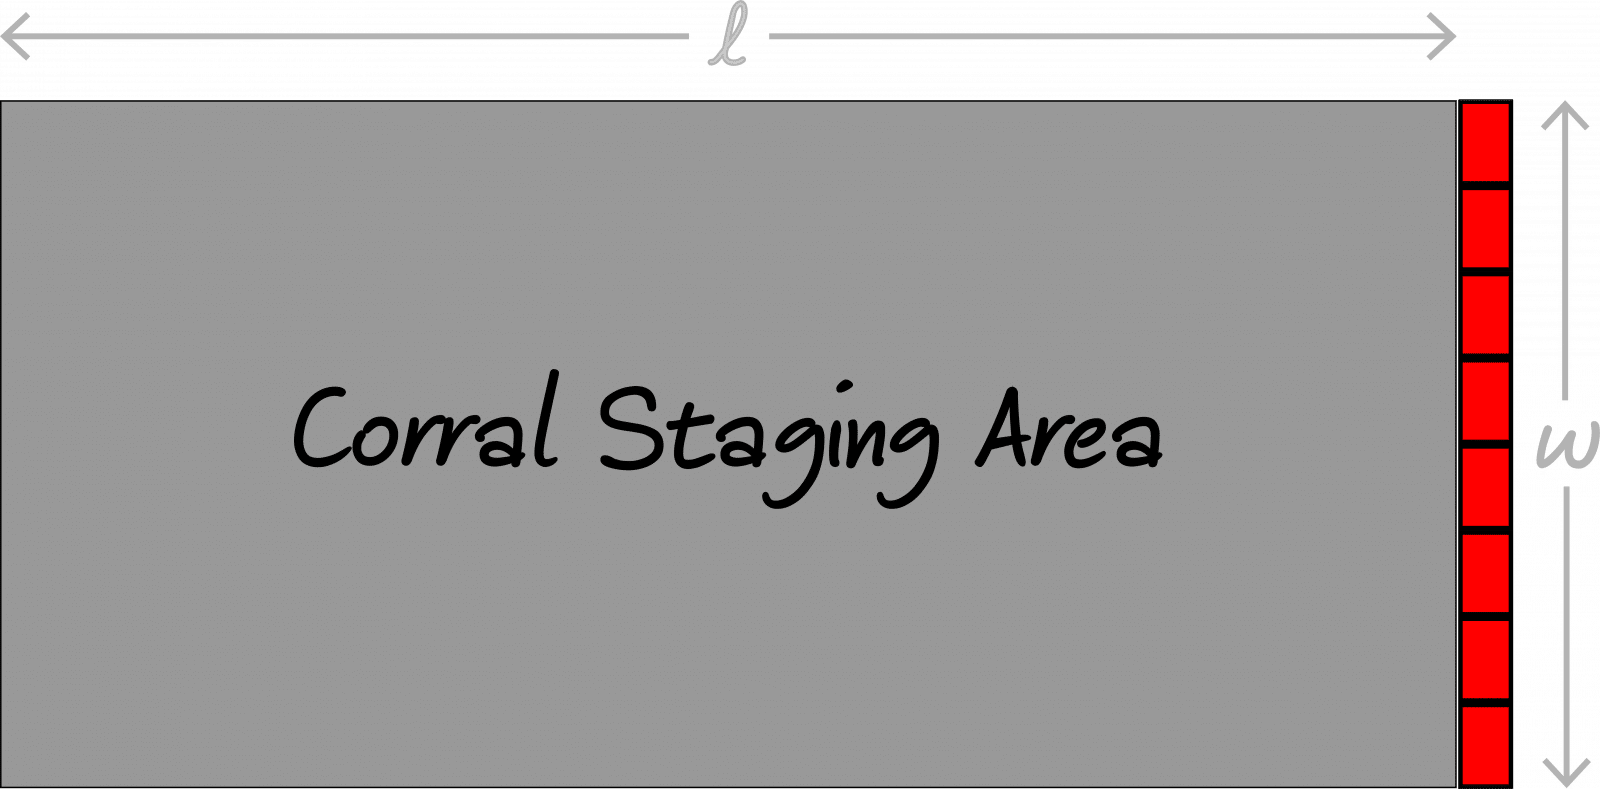 Corral Staging Area